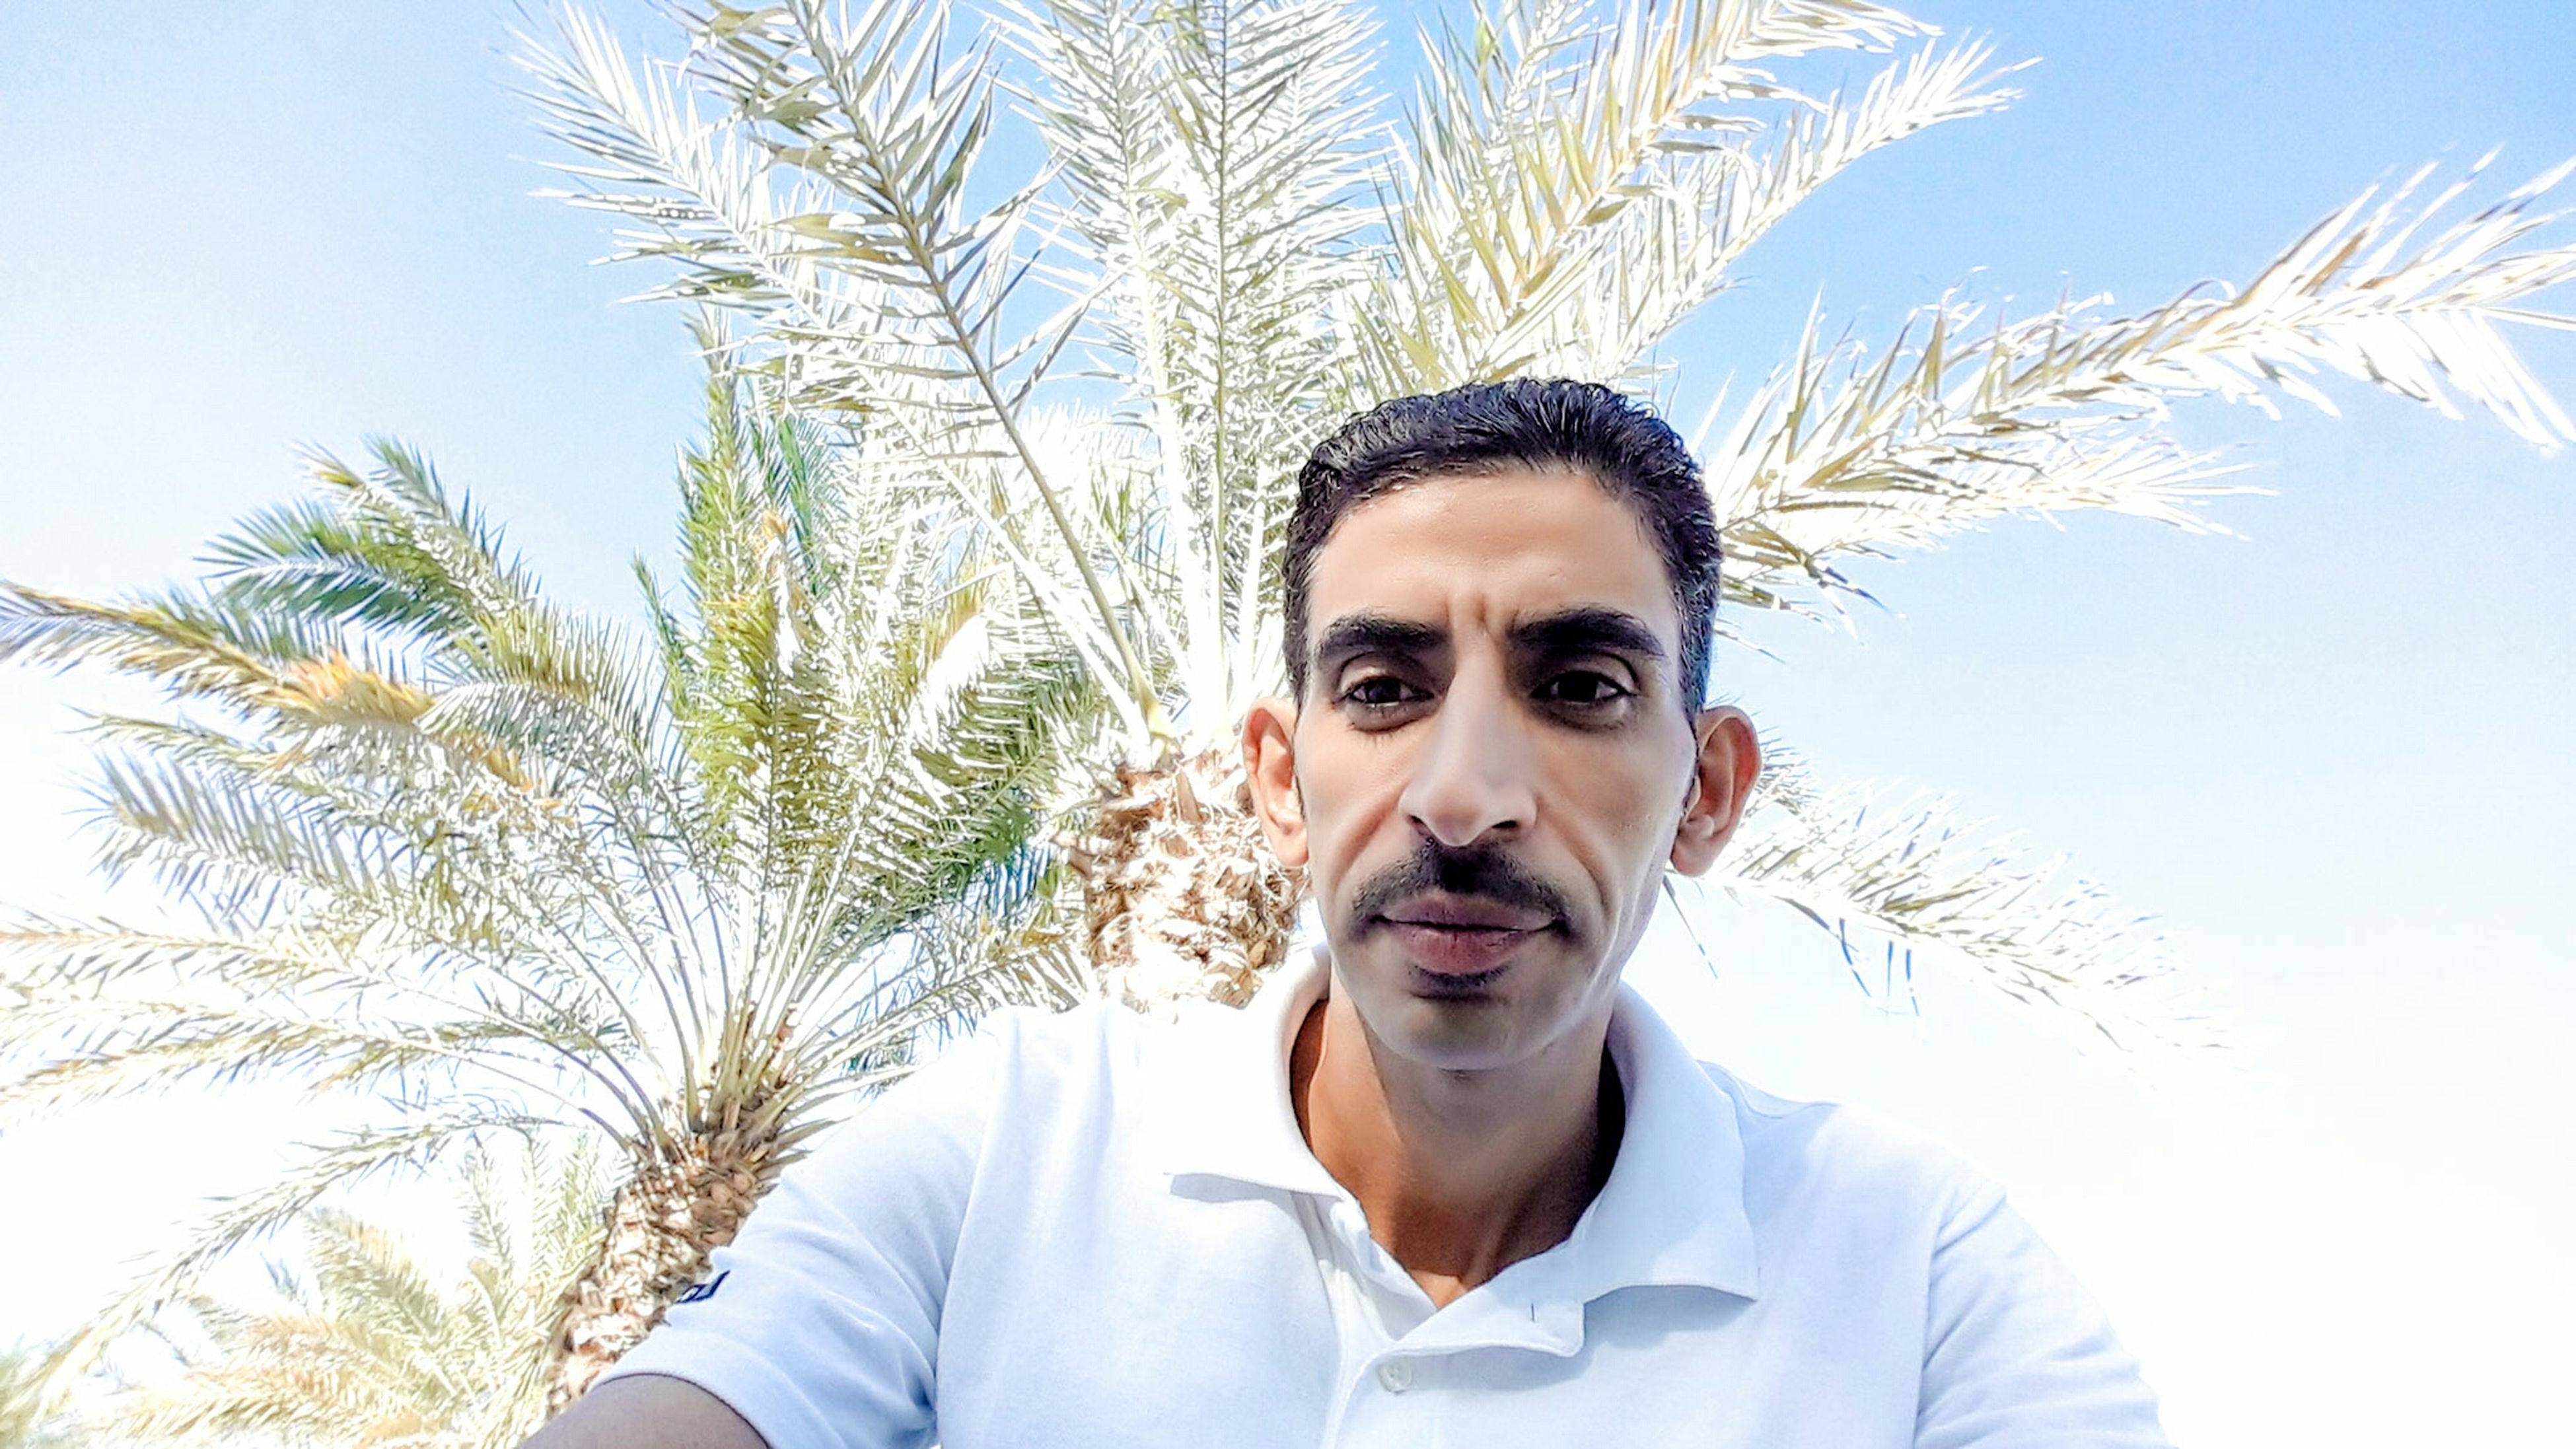 portrait, looking at camera, person, young adult, front view, lifestyles, smiling, young men, headshot, leisure activity, casual clothing, happiness, low angle view, tree, clear sky, mid adult